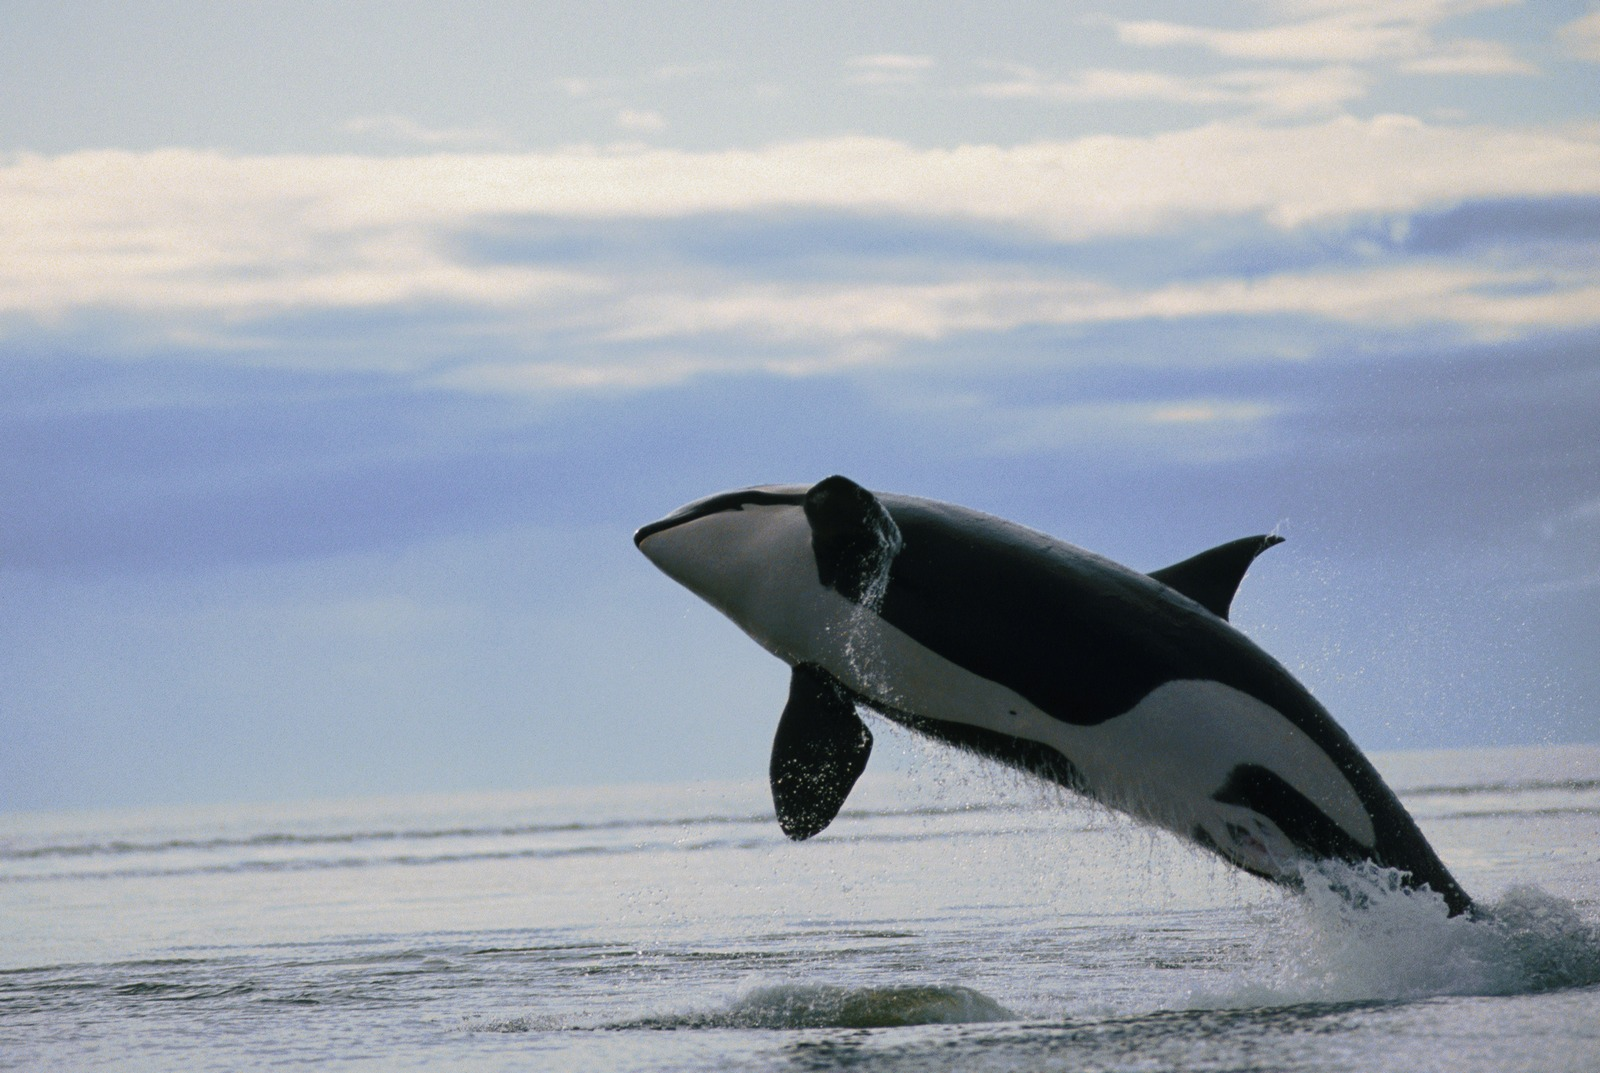 Malignant Sharks and Killer Whales My image 1600x1073